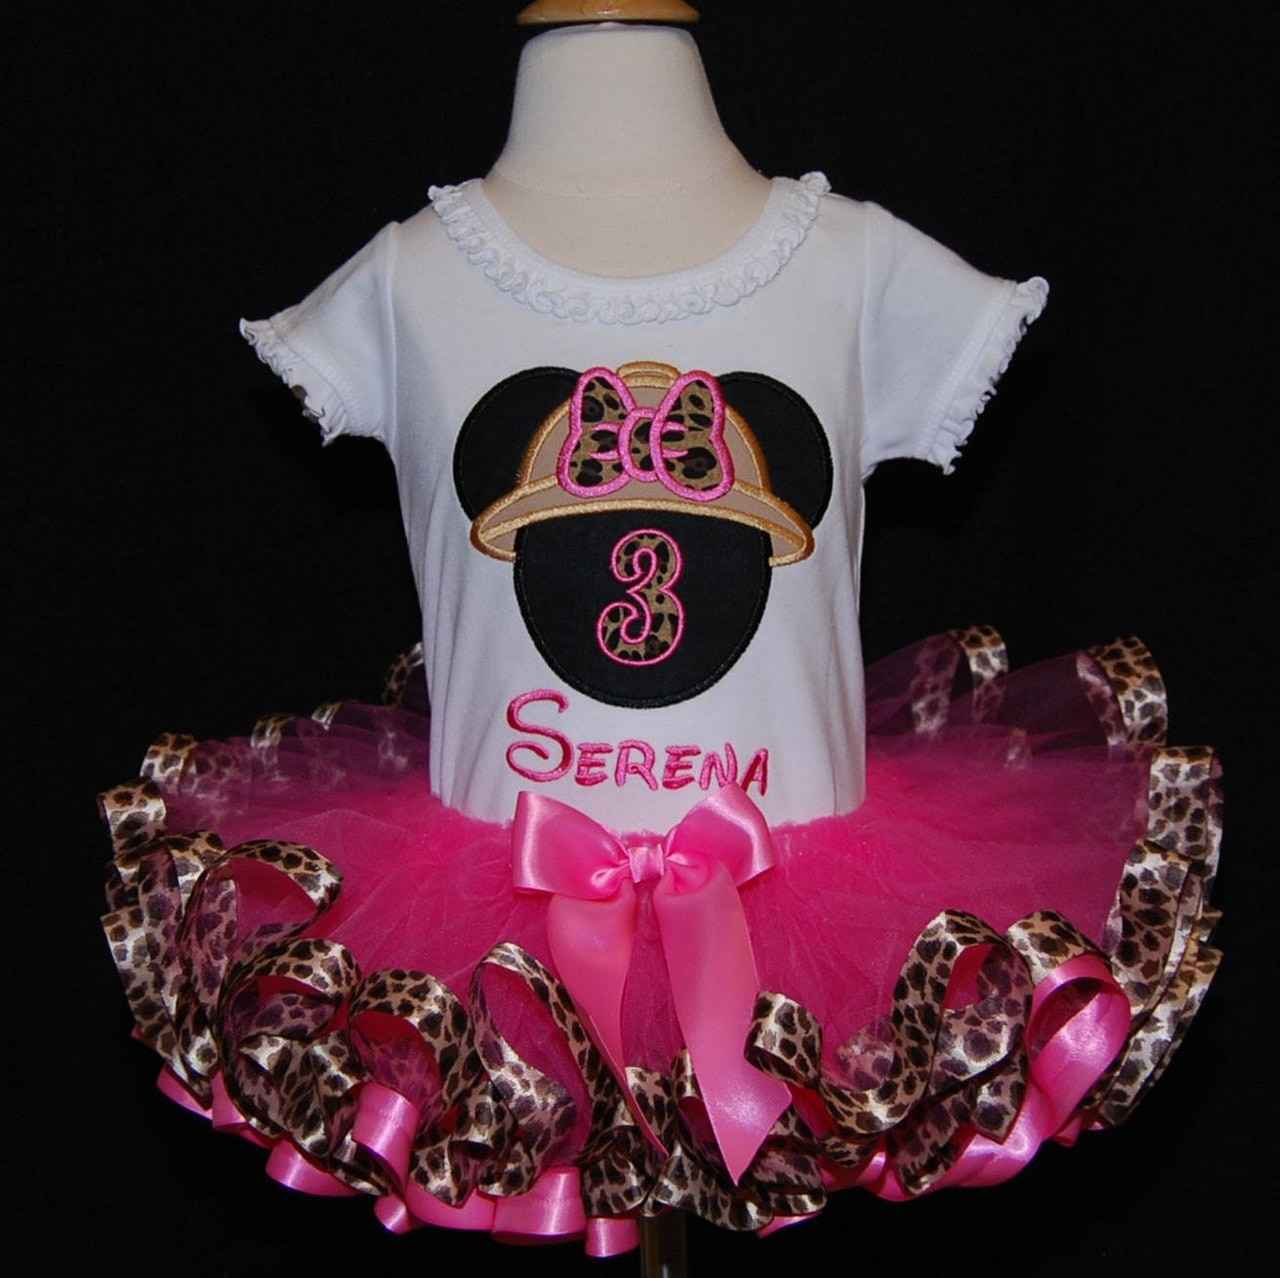 Minnie Mouse birthday tutu outfit glitter birthday dress 3rnd birthday tutu outfit, ribbon trim tutu, second birthday girl outfit